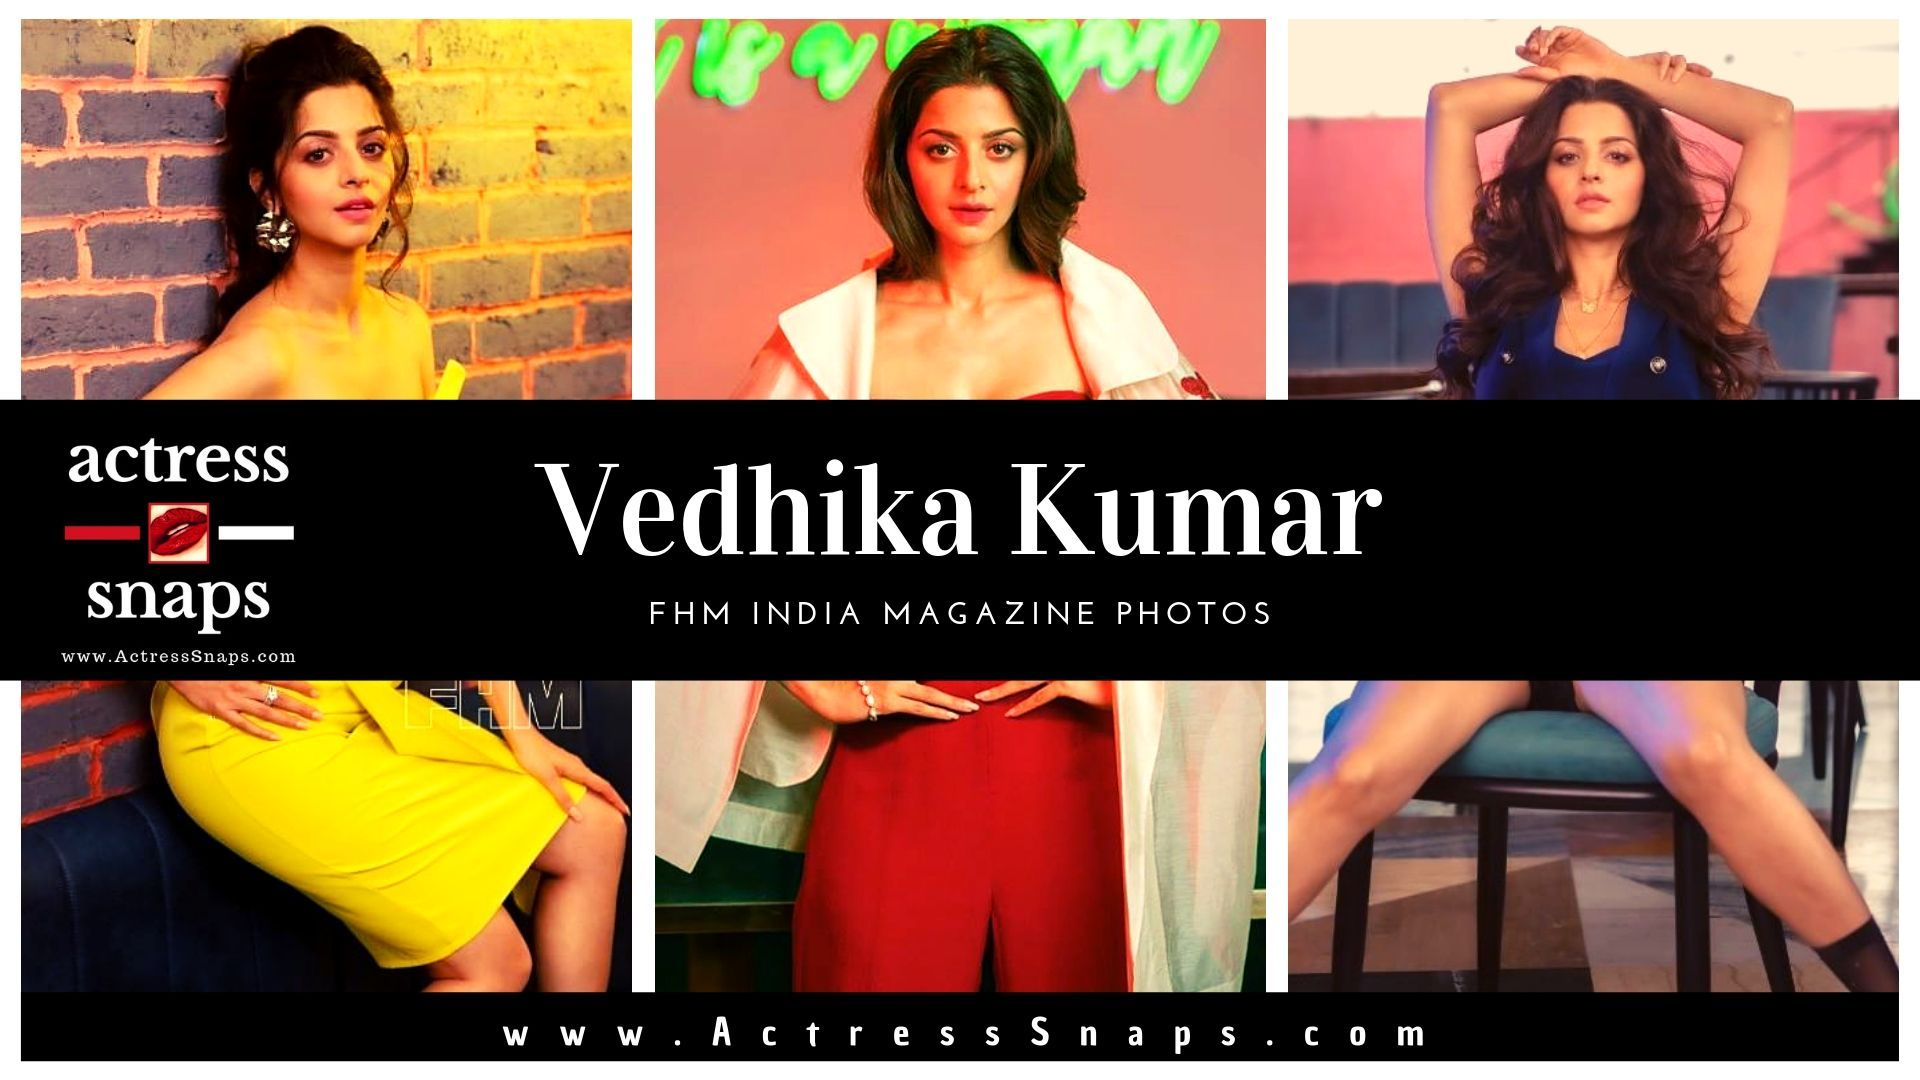 Vedhika Kumar - FHM India Scans - Sexy Actress Pictures   Hot Actress Pictures - ActressSnaps.com